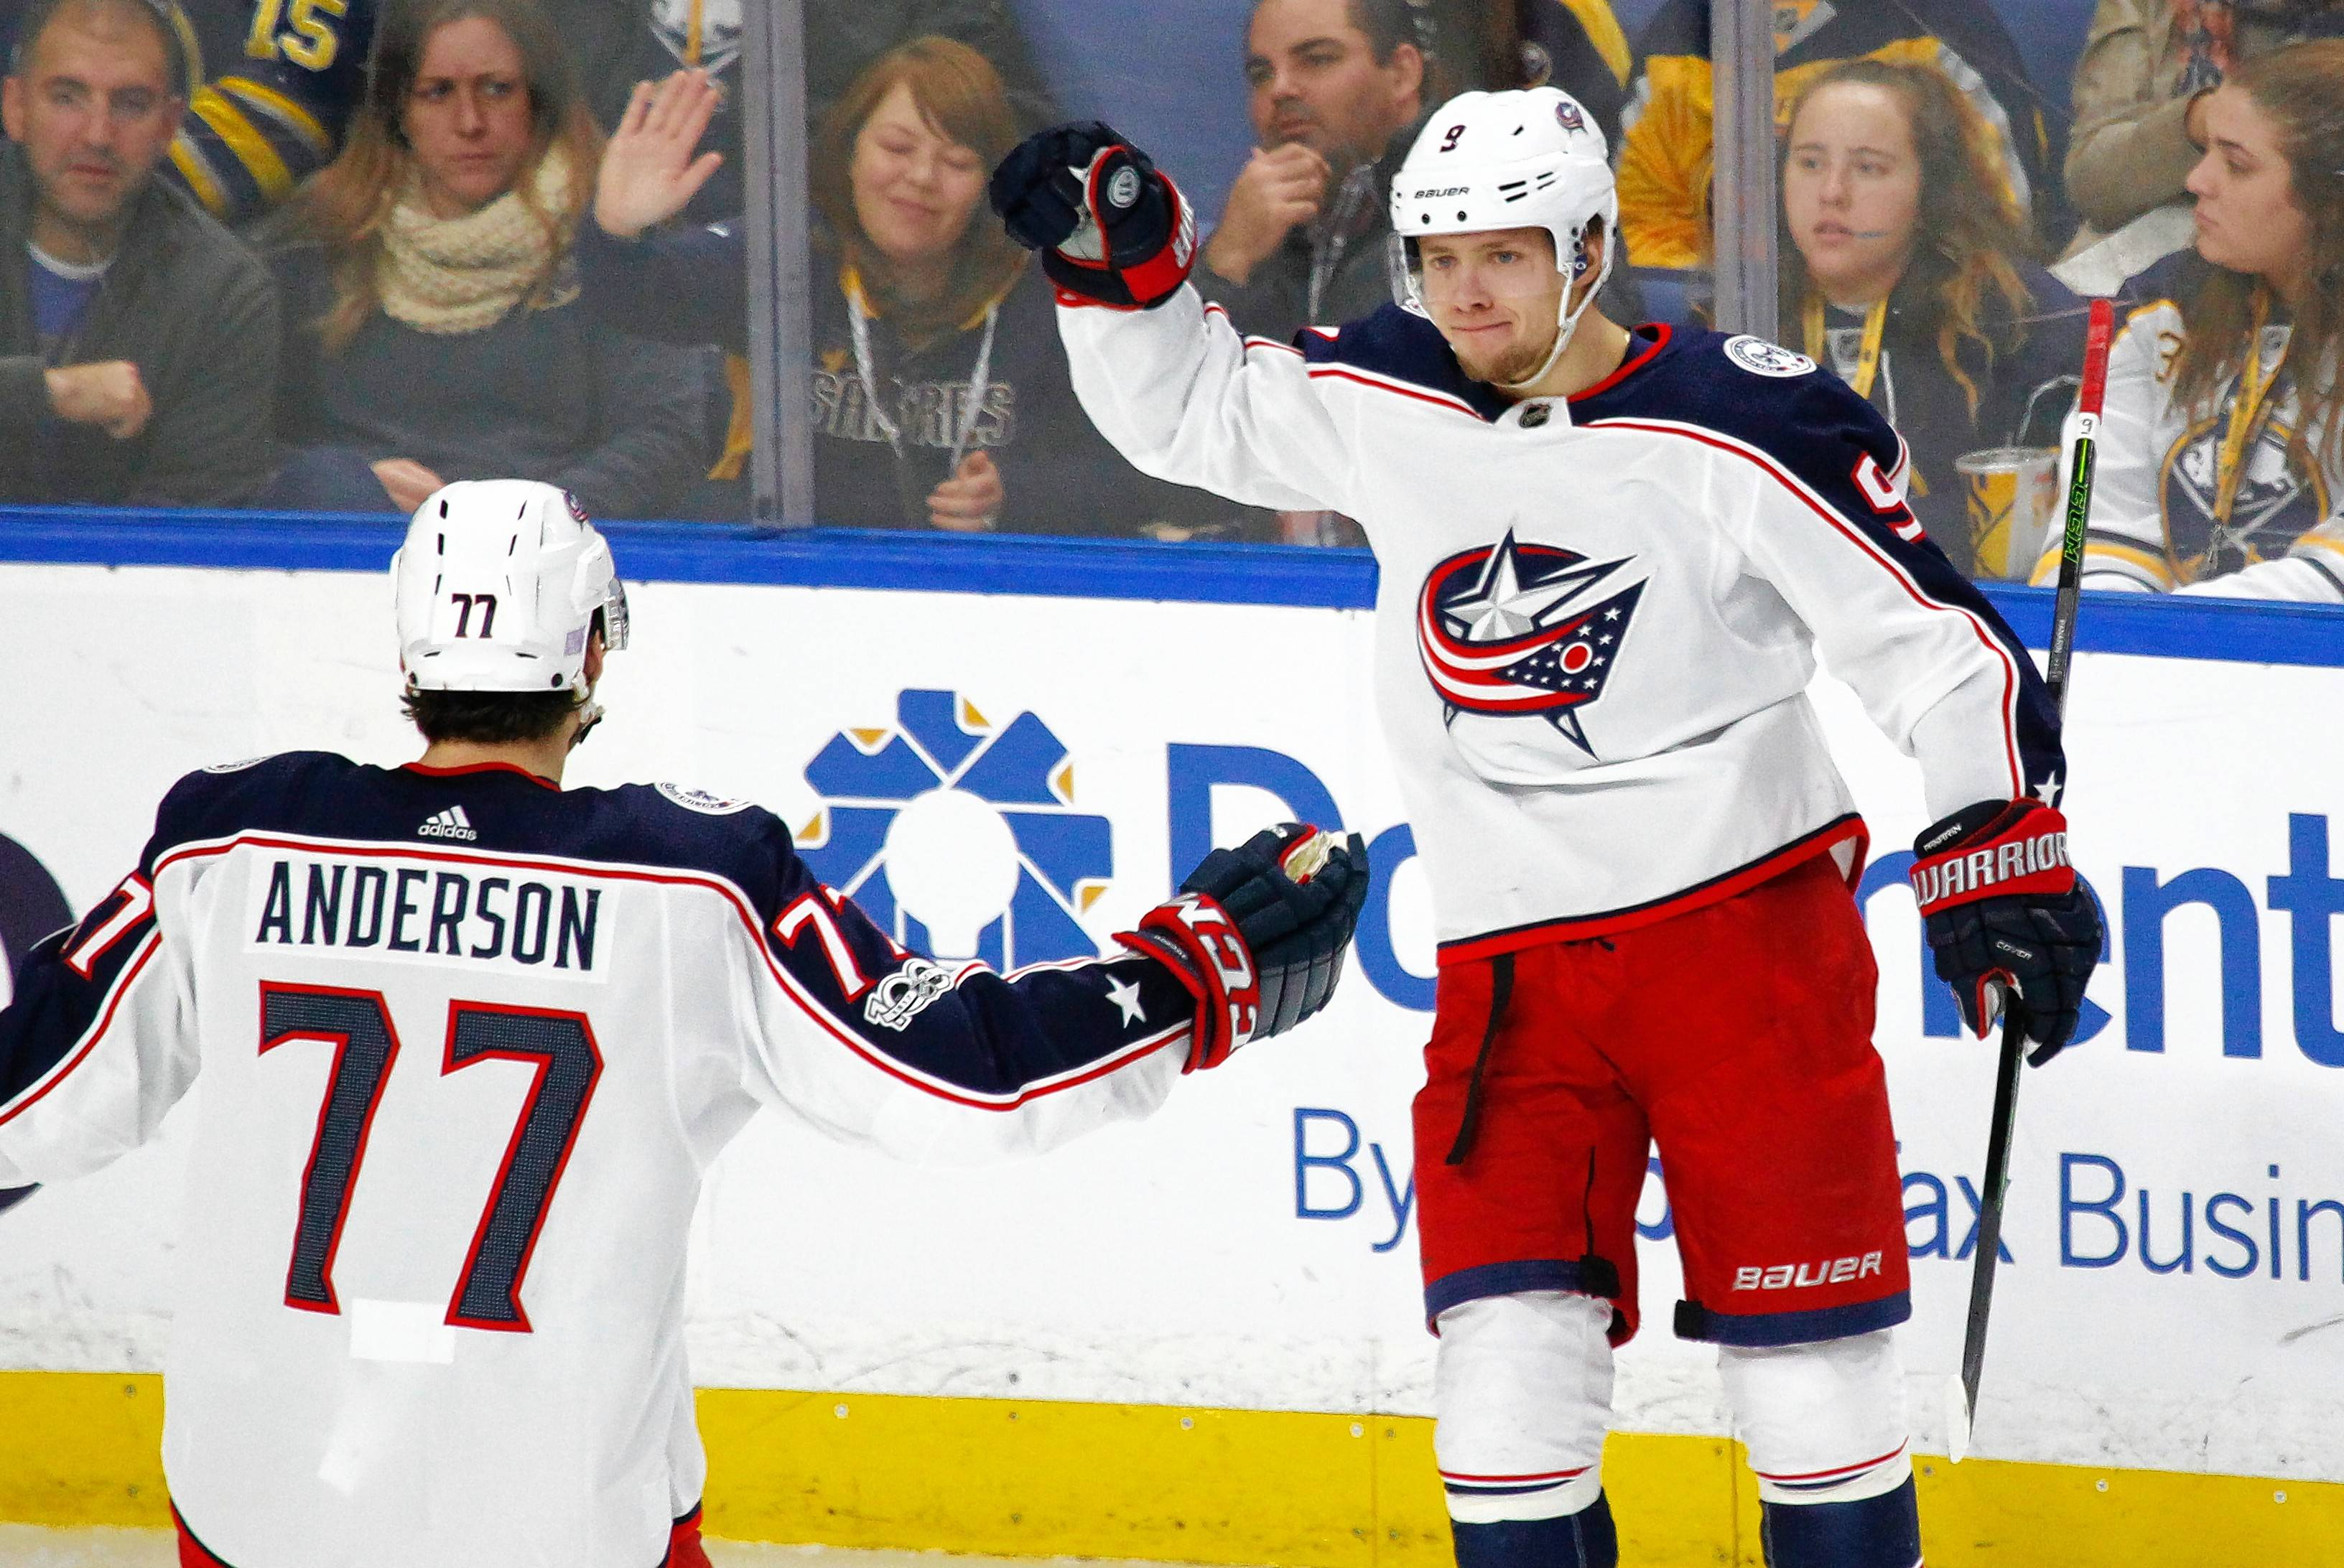 Columbus Blue Jackets Josh Anderson (77) and Artemi Panarin (9) celebrate a goal during the third period of an NHL hockey game against the Buffalo Sabres, Monday Nov. 20, 2017, in Buffalo, N.Y.